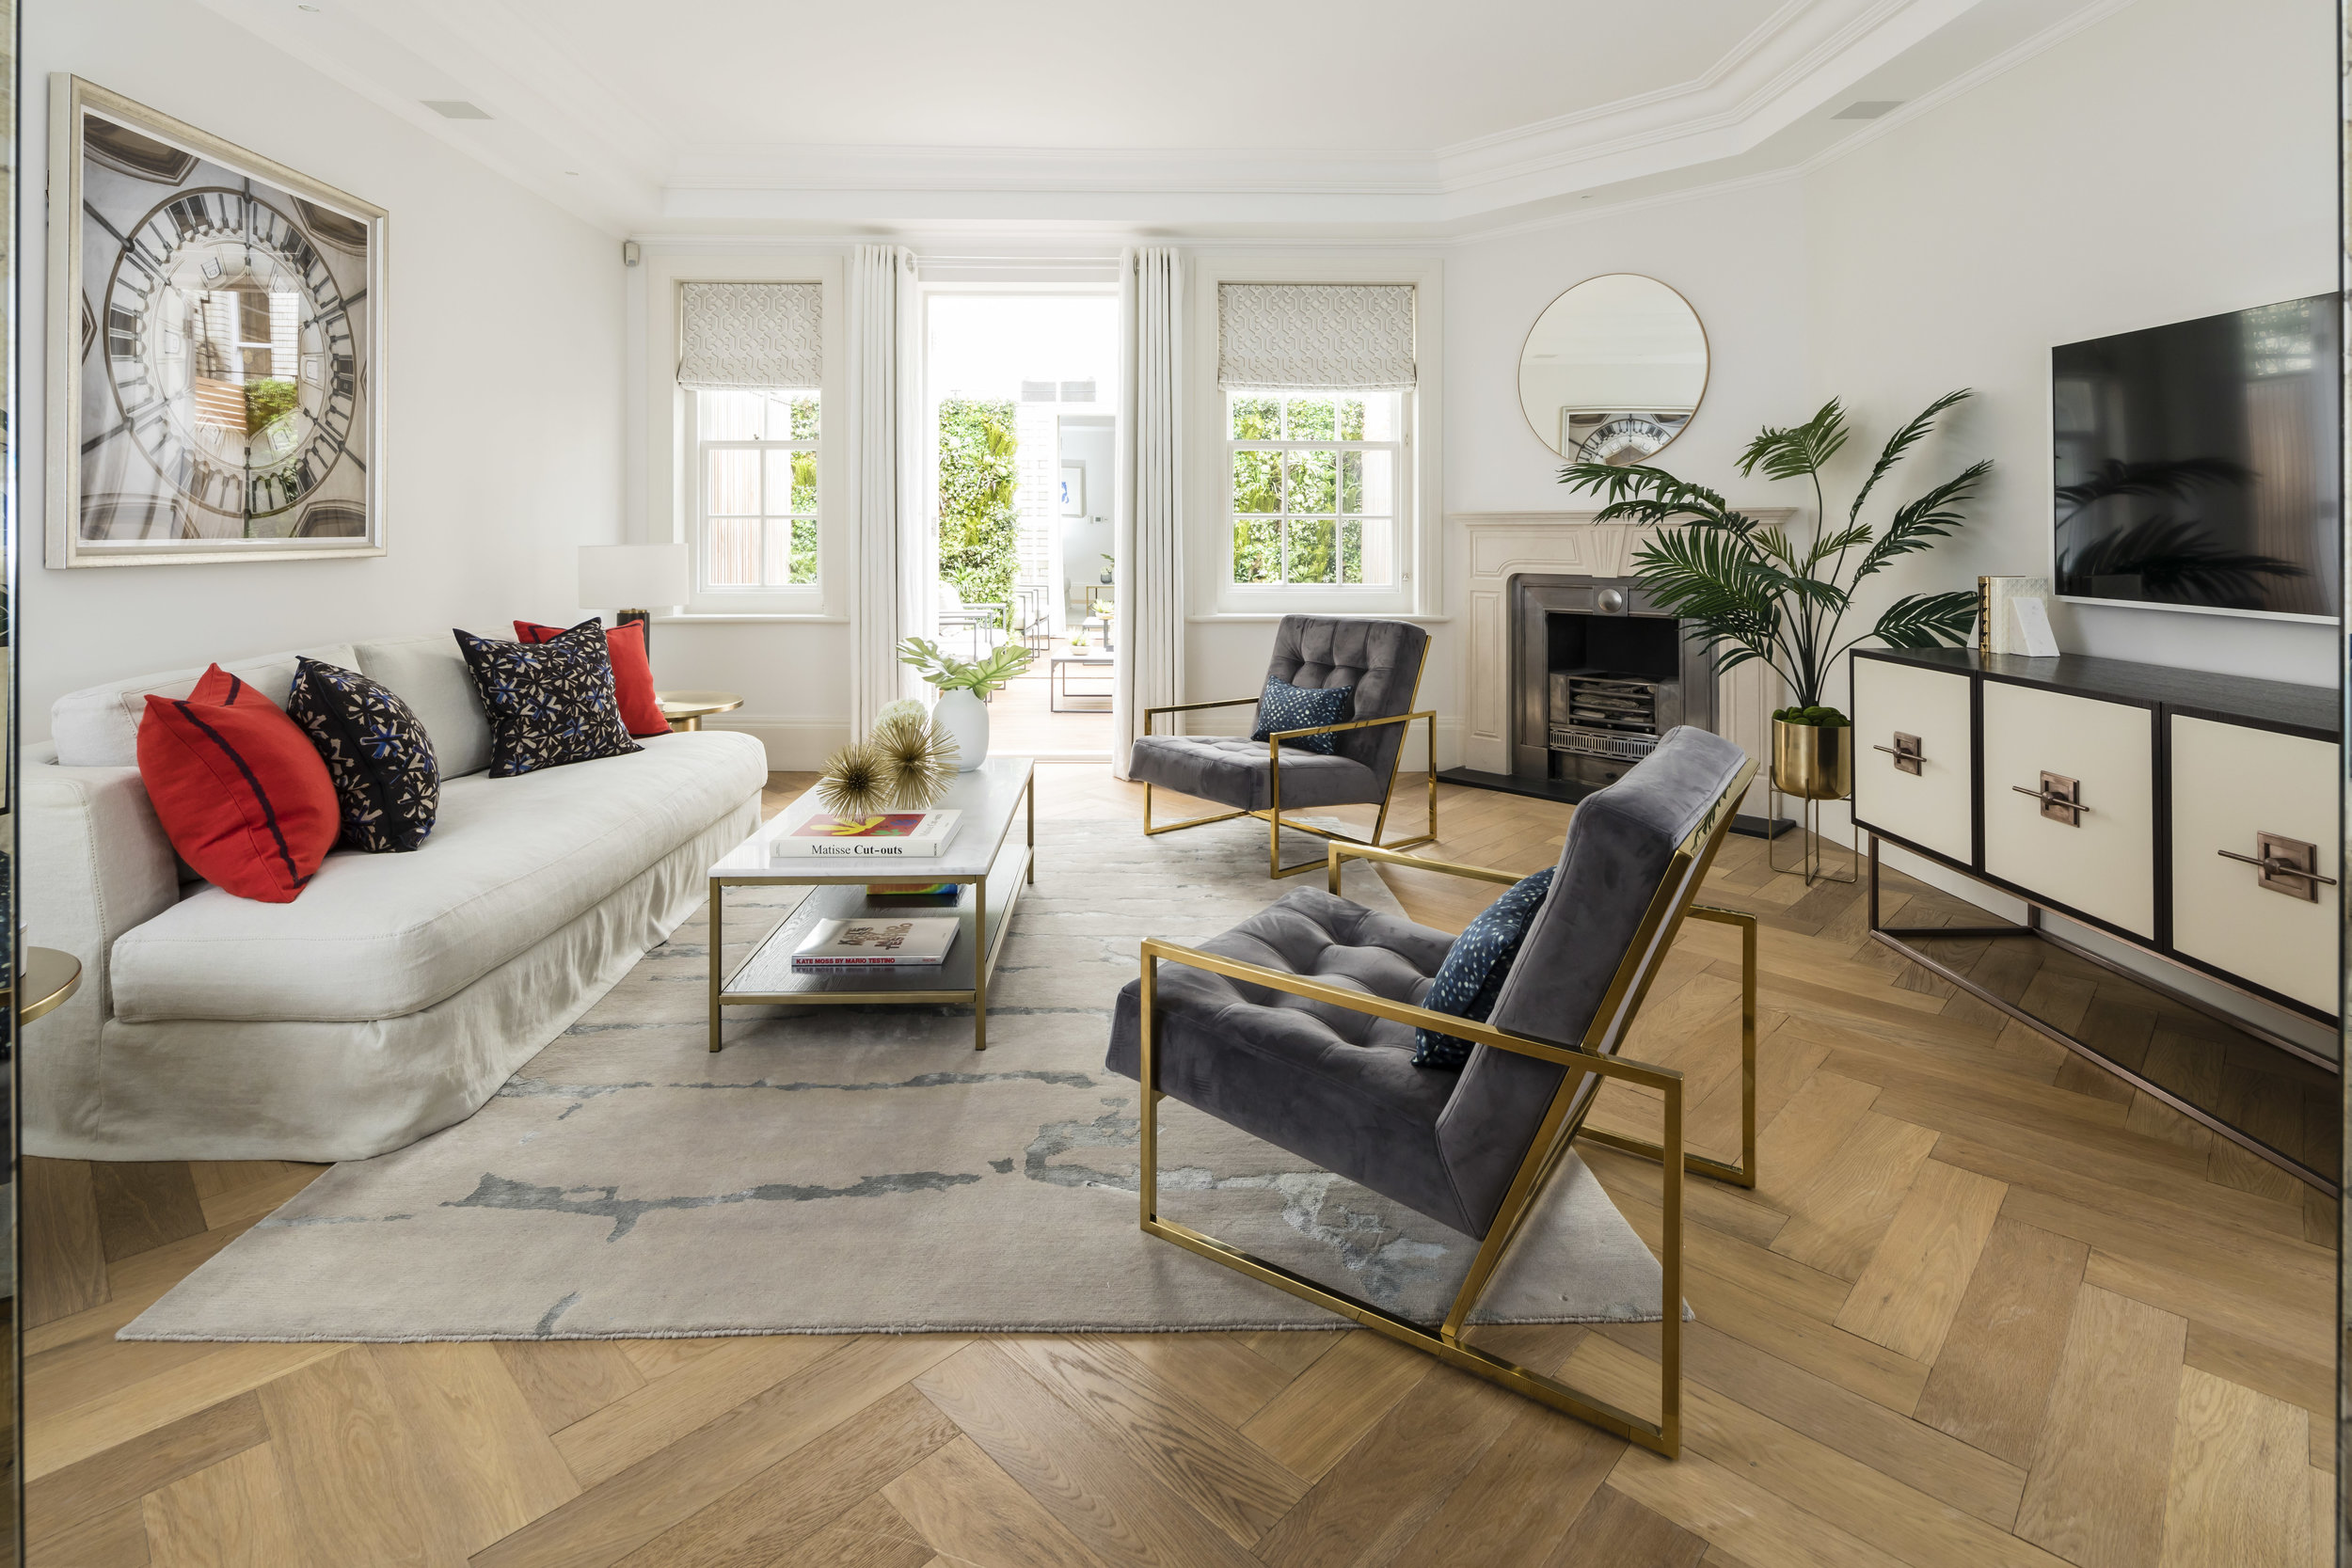 An immaculate 3 Bedroom maisonette in the heart of the Mayfair Village with a long lease and private terrace. EPC: E.